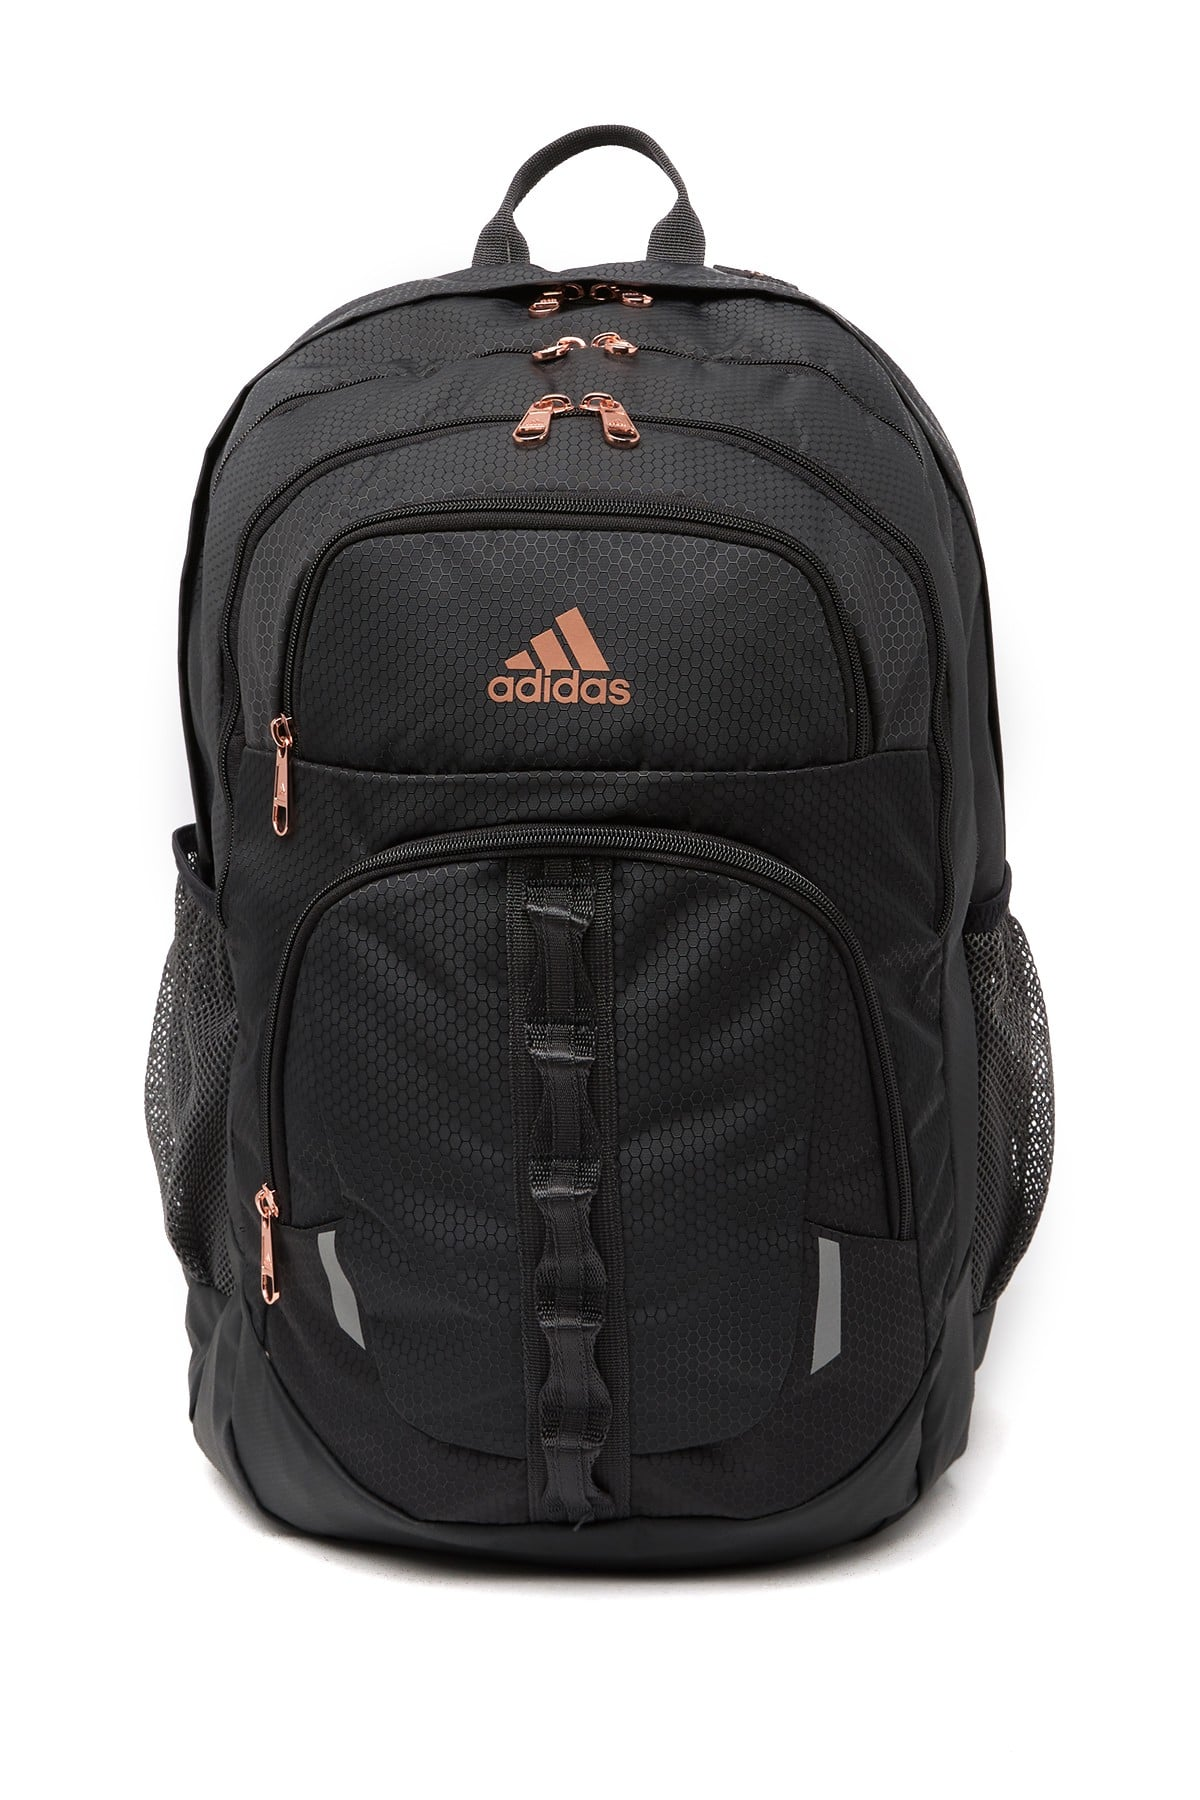 Adidas Prime V Backpack w/ Free Shipping $31.97